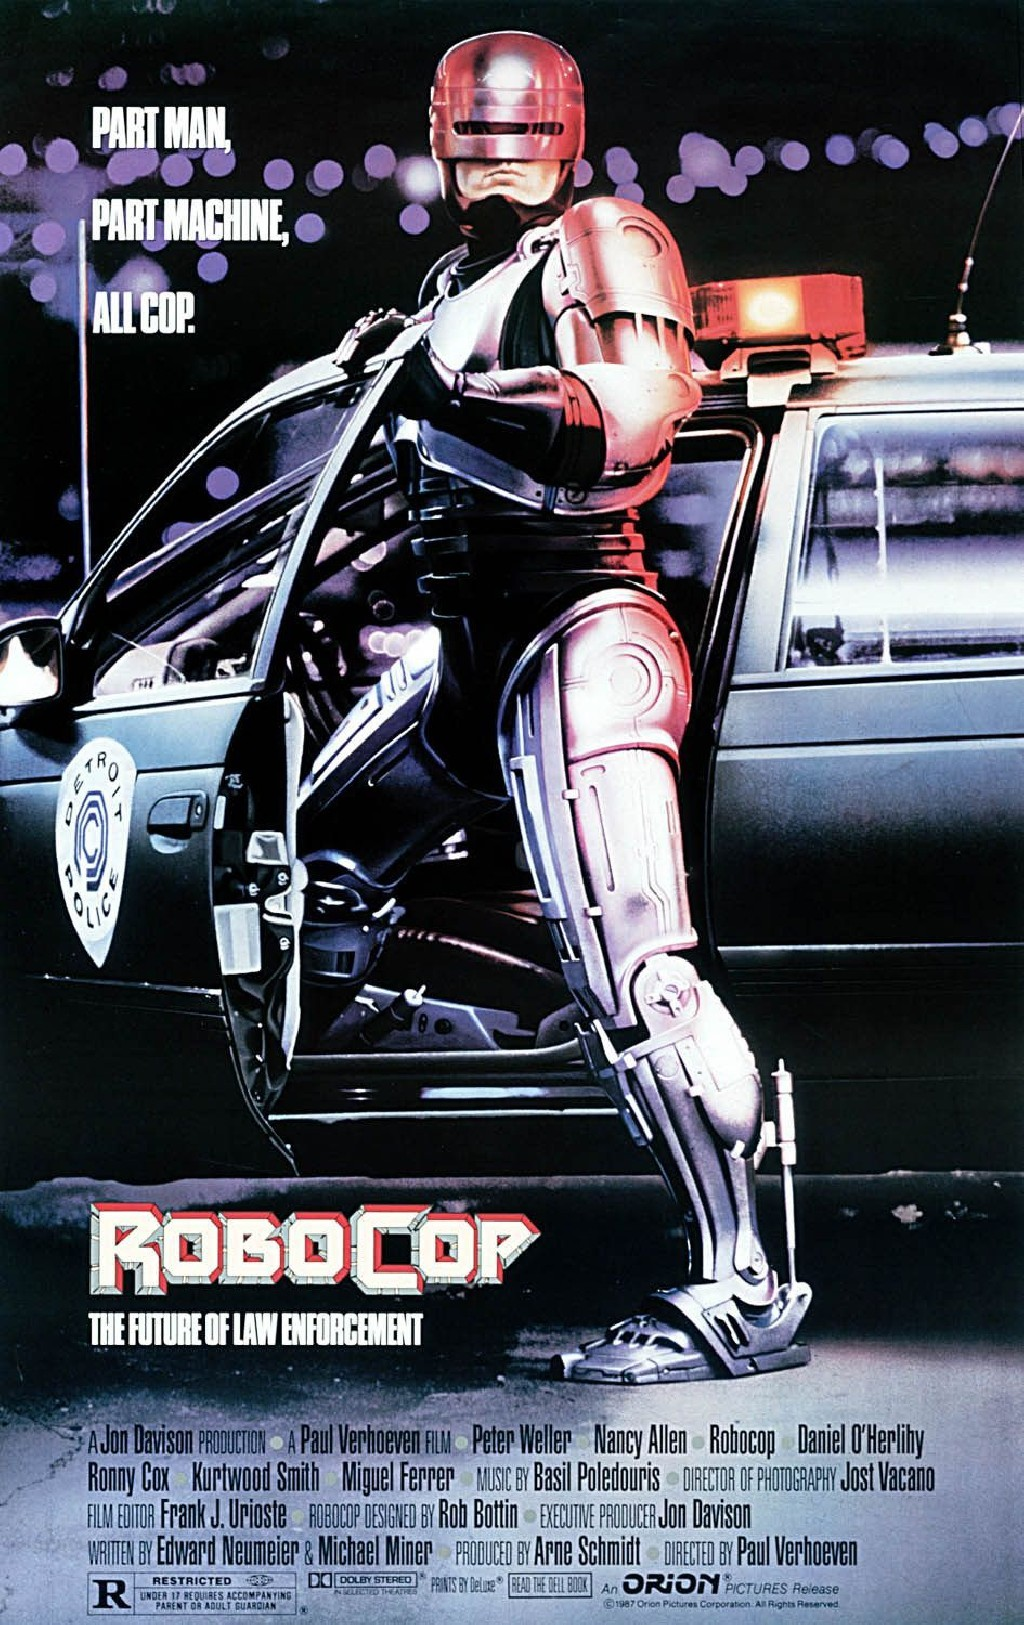 Part Man, Part Machine, All Cop. Robocop.  The Future Of Law Enforcement.